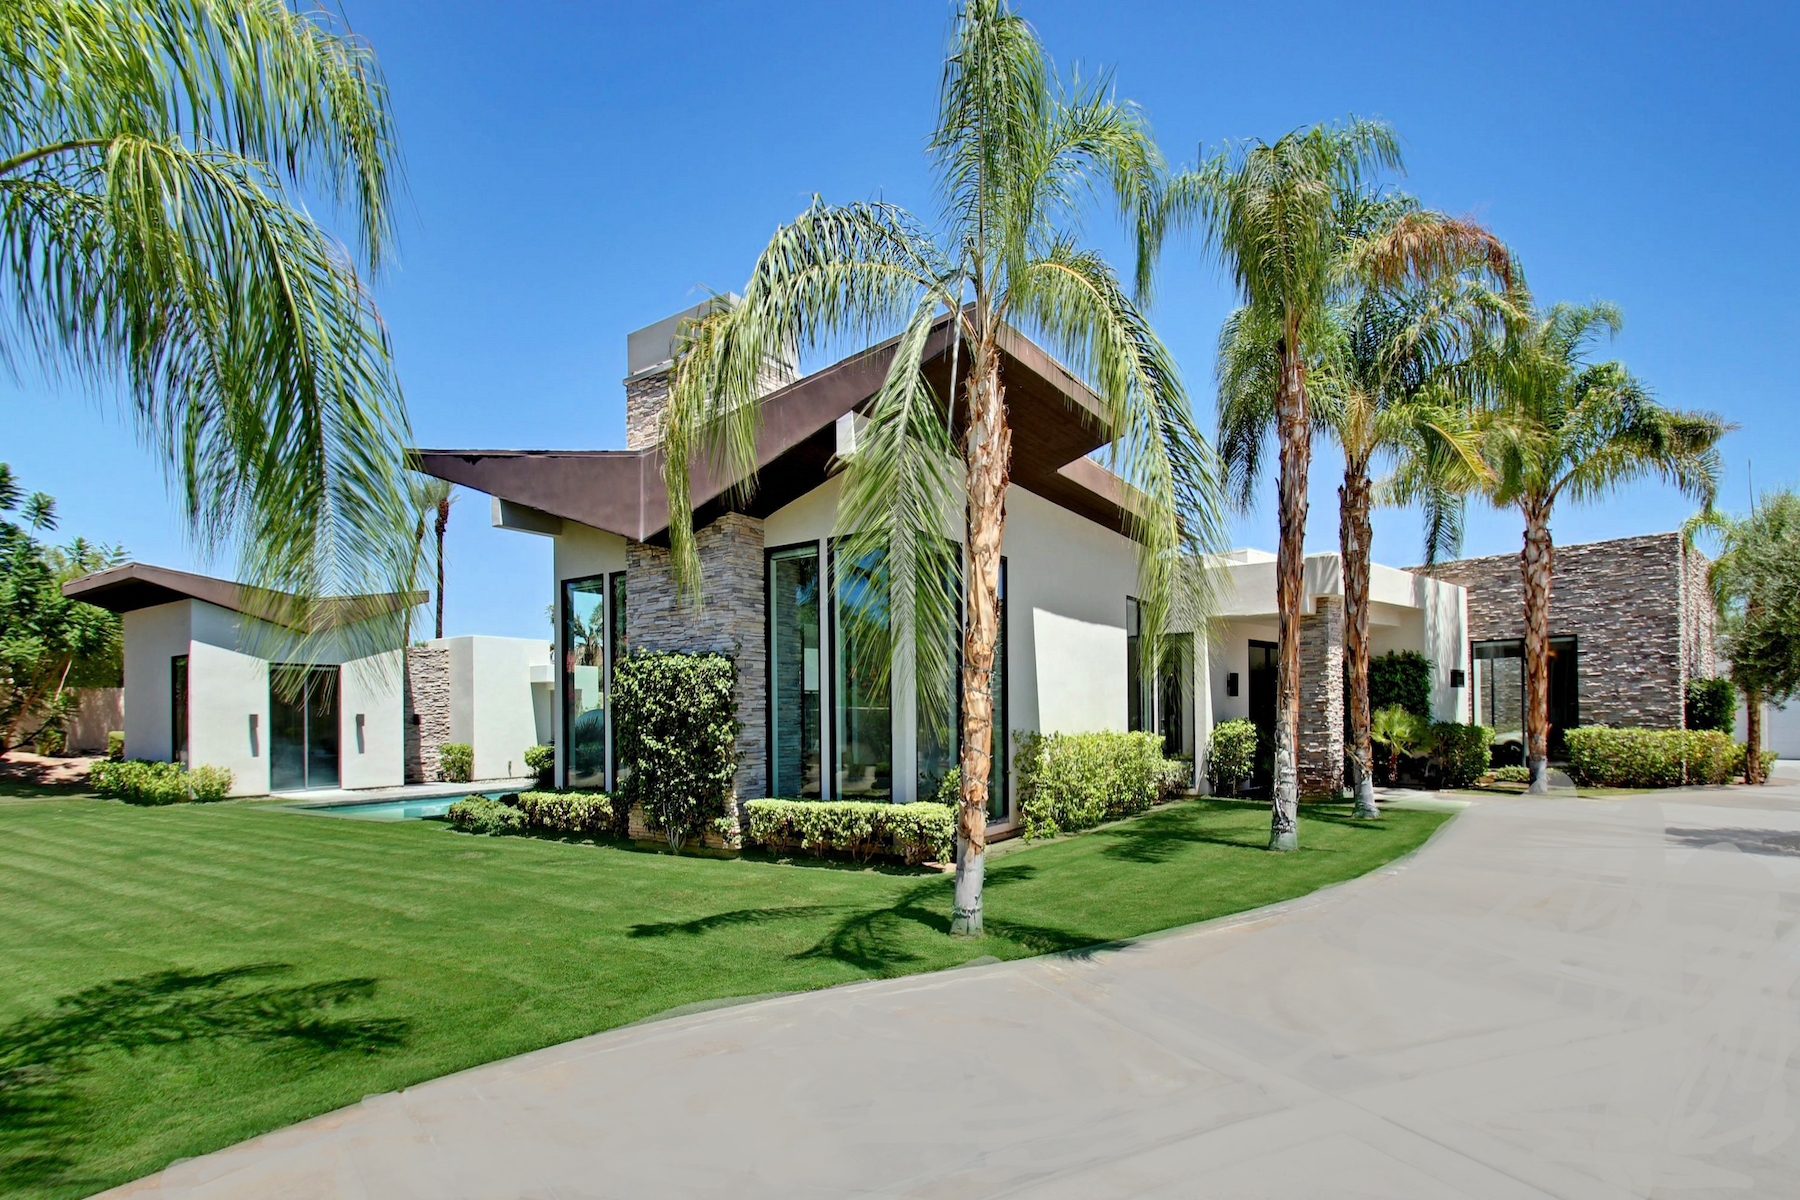 Single Family Homes for Sale at 1 Belleza Court Rancho Mirage, California 92270 United States